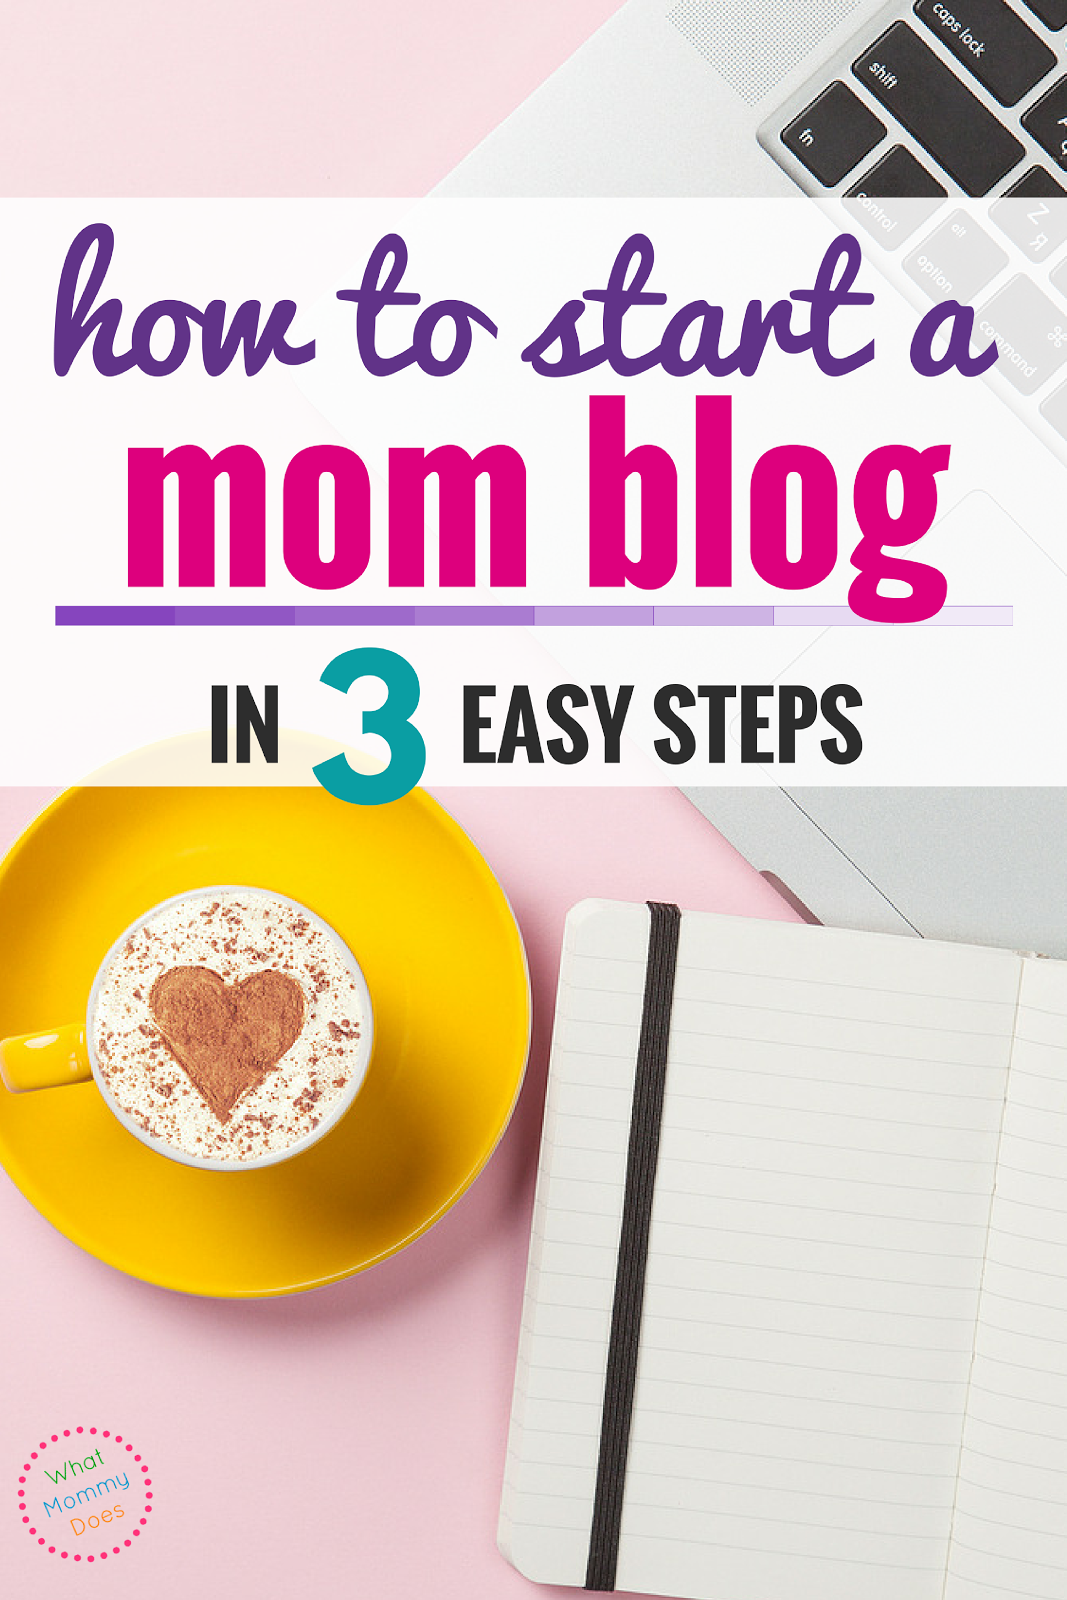 How to Start a Mom Blog in 3 Quick Steps